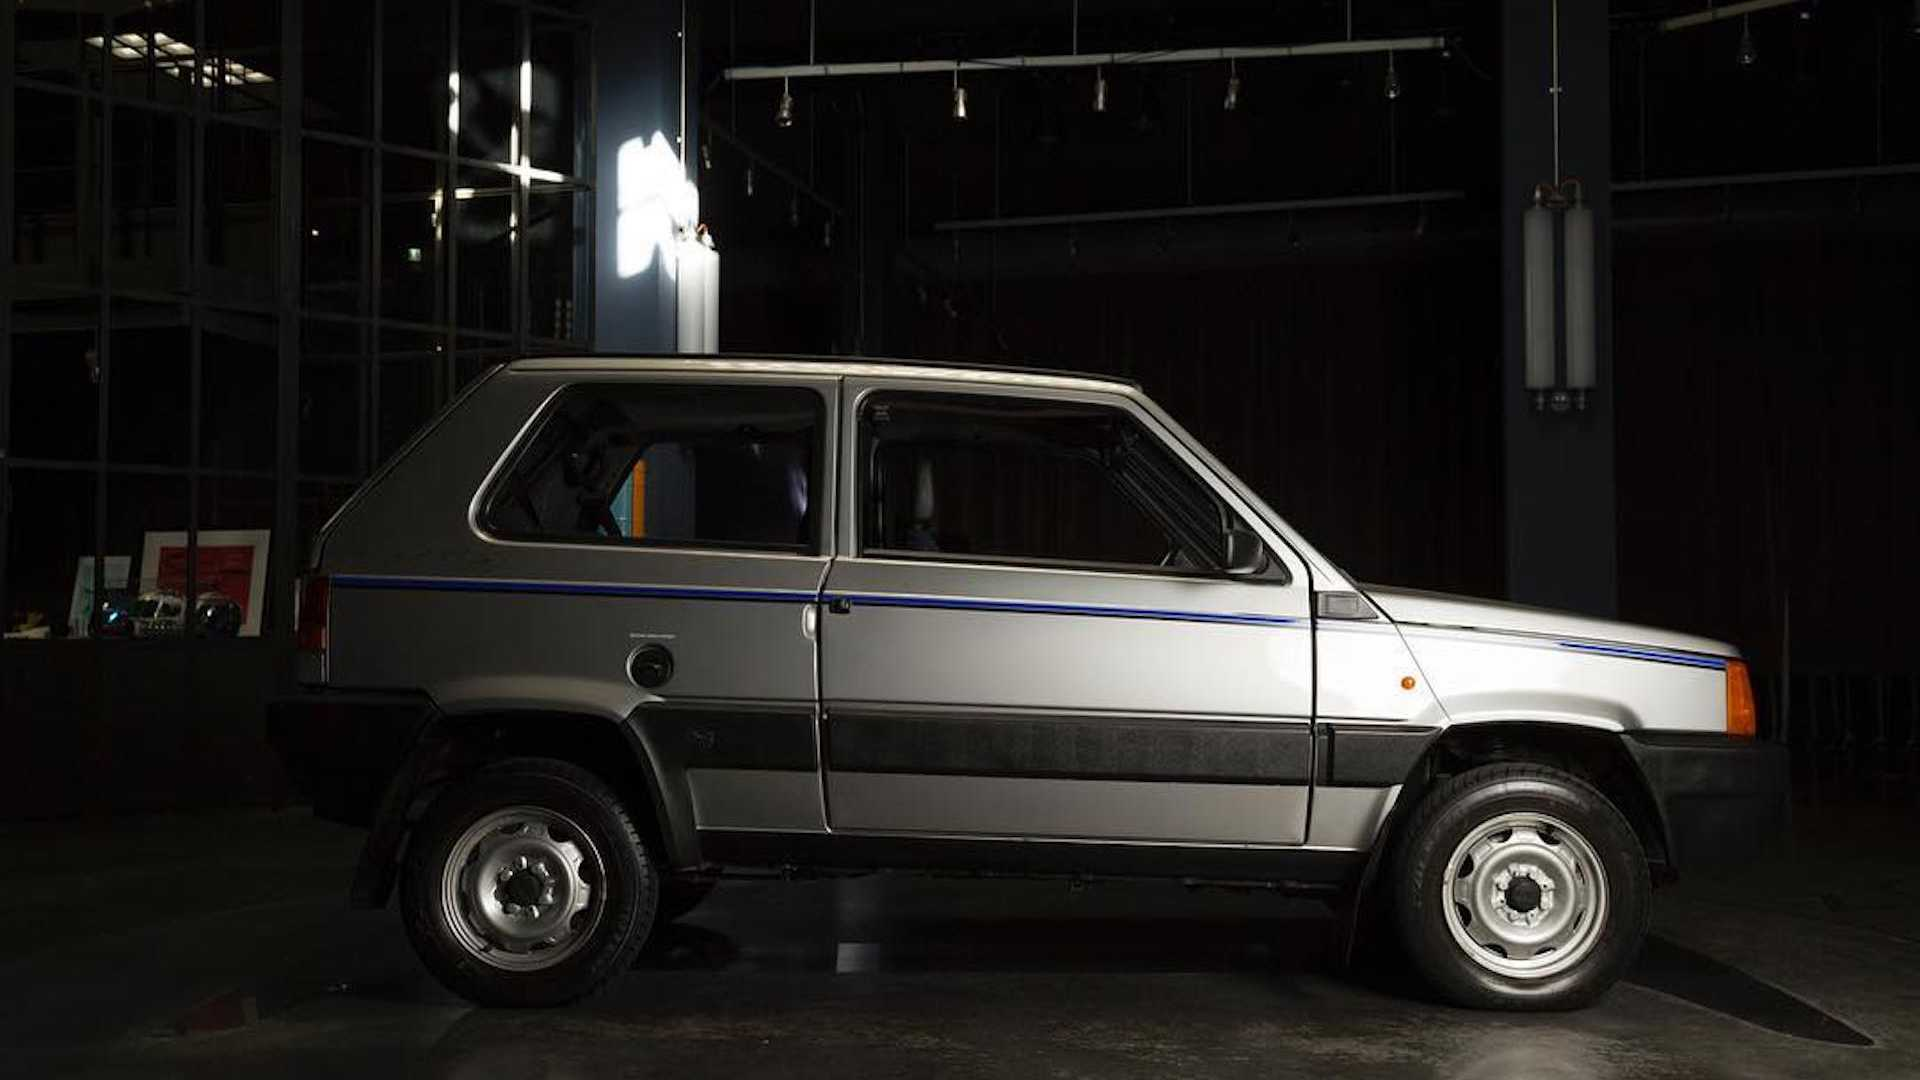 Fiat Panda 4x4 restored by Garage Italia Customs (2)